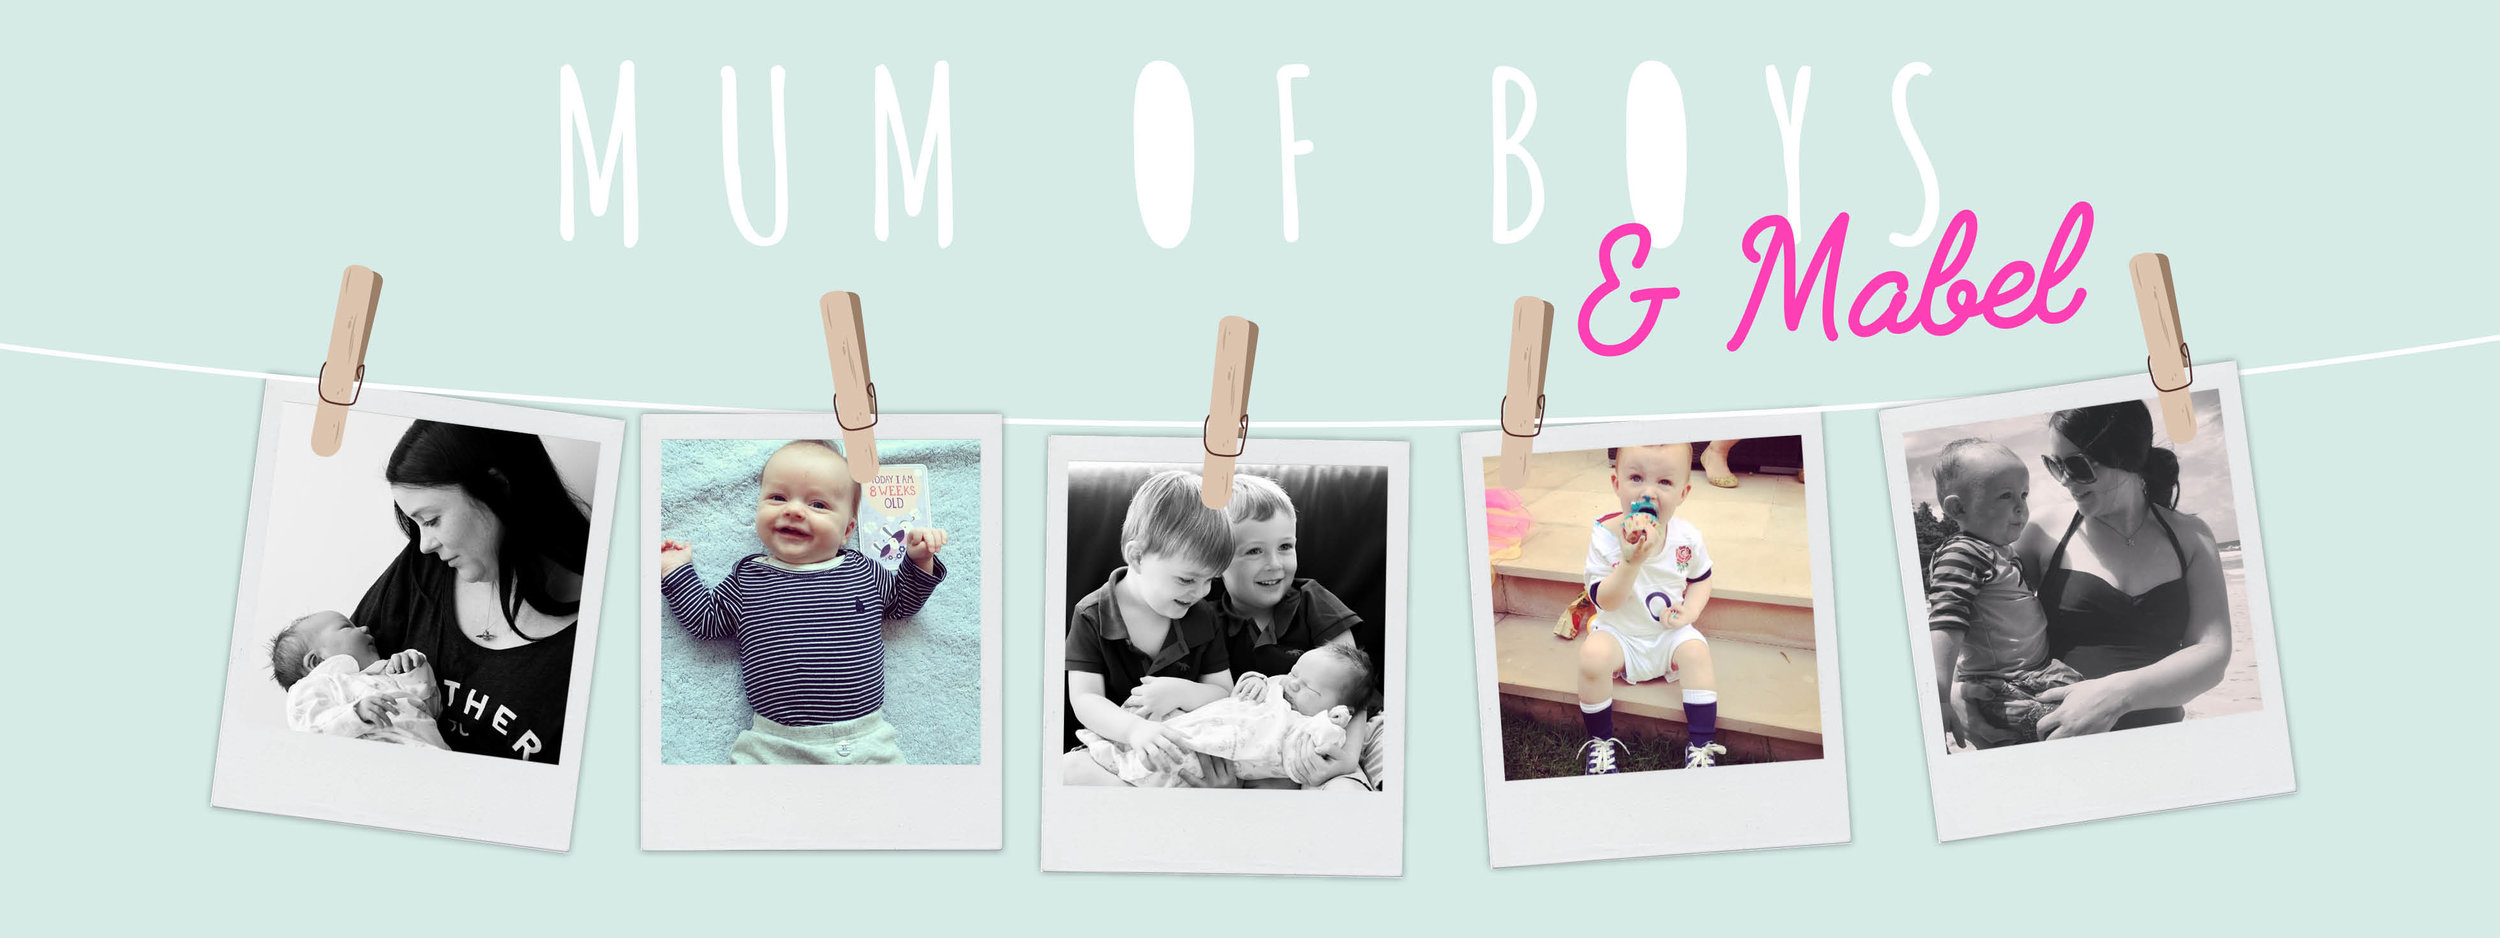 MUM_OF_BOYS_HEADER_MABEL.jpg